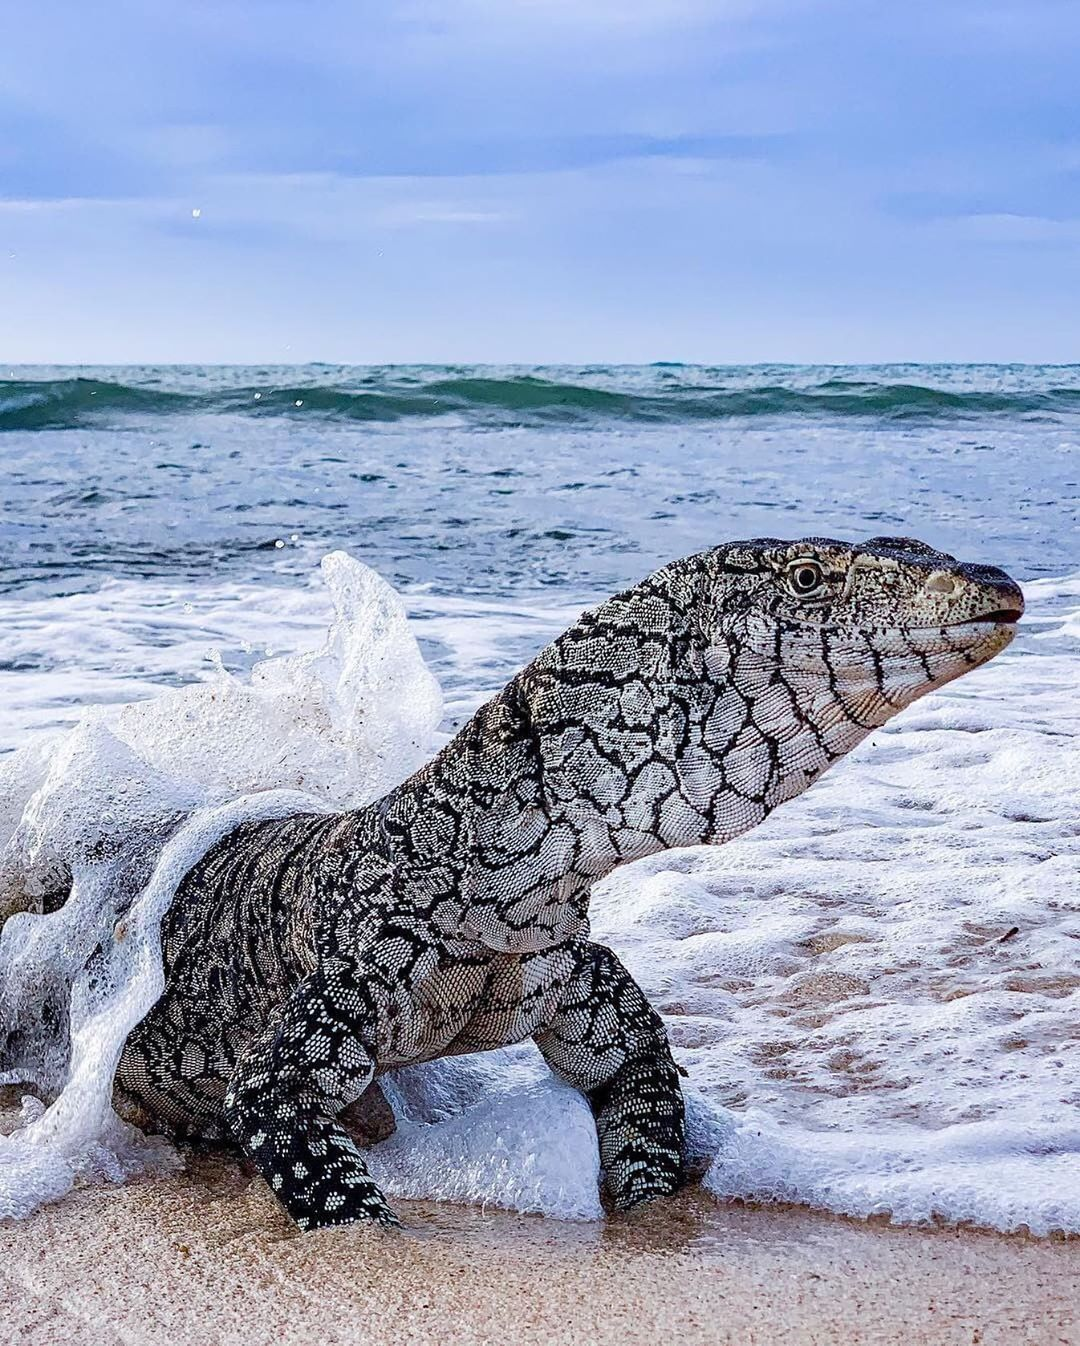 Nature On Instagram Can You Name This Lizard Exmouth Western Australia Photo By Adventuresofbluecrust Nature Monitor Lizard Animals Lizard